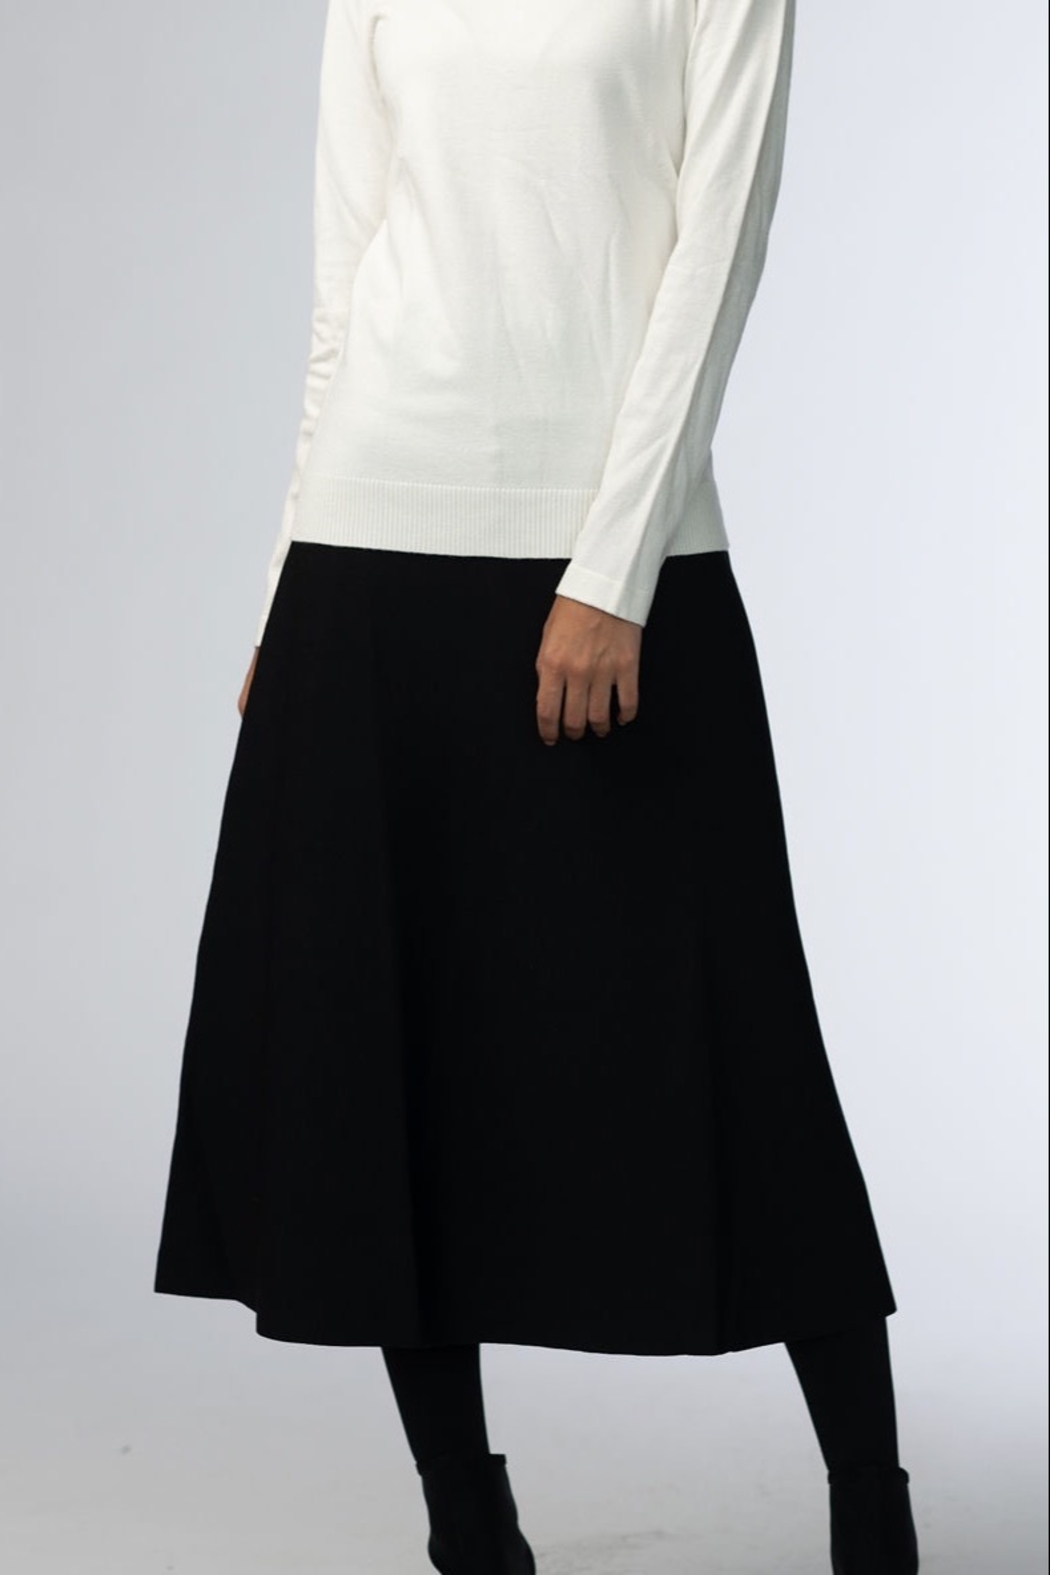 Meli by FAME 3 PANEL SKIRT 23 INCH - Main Image